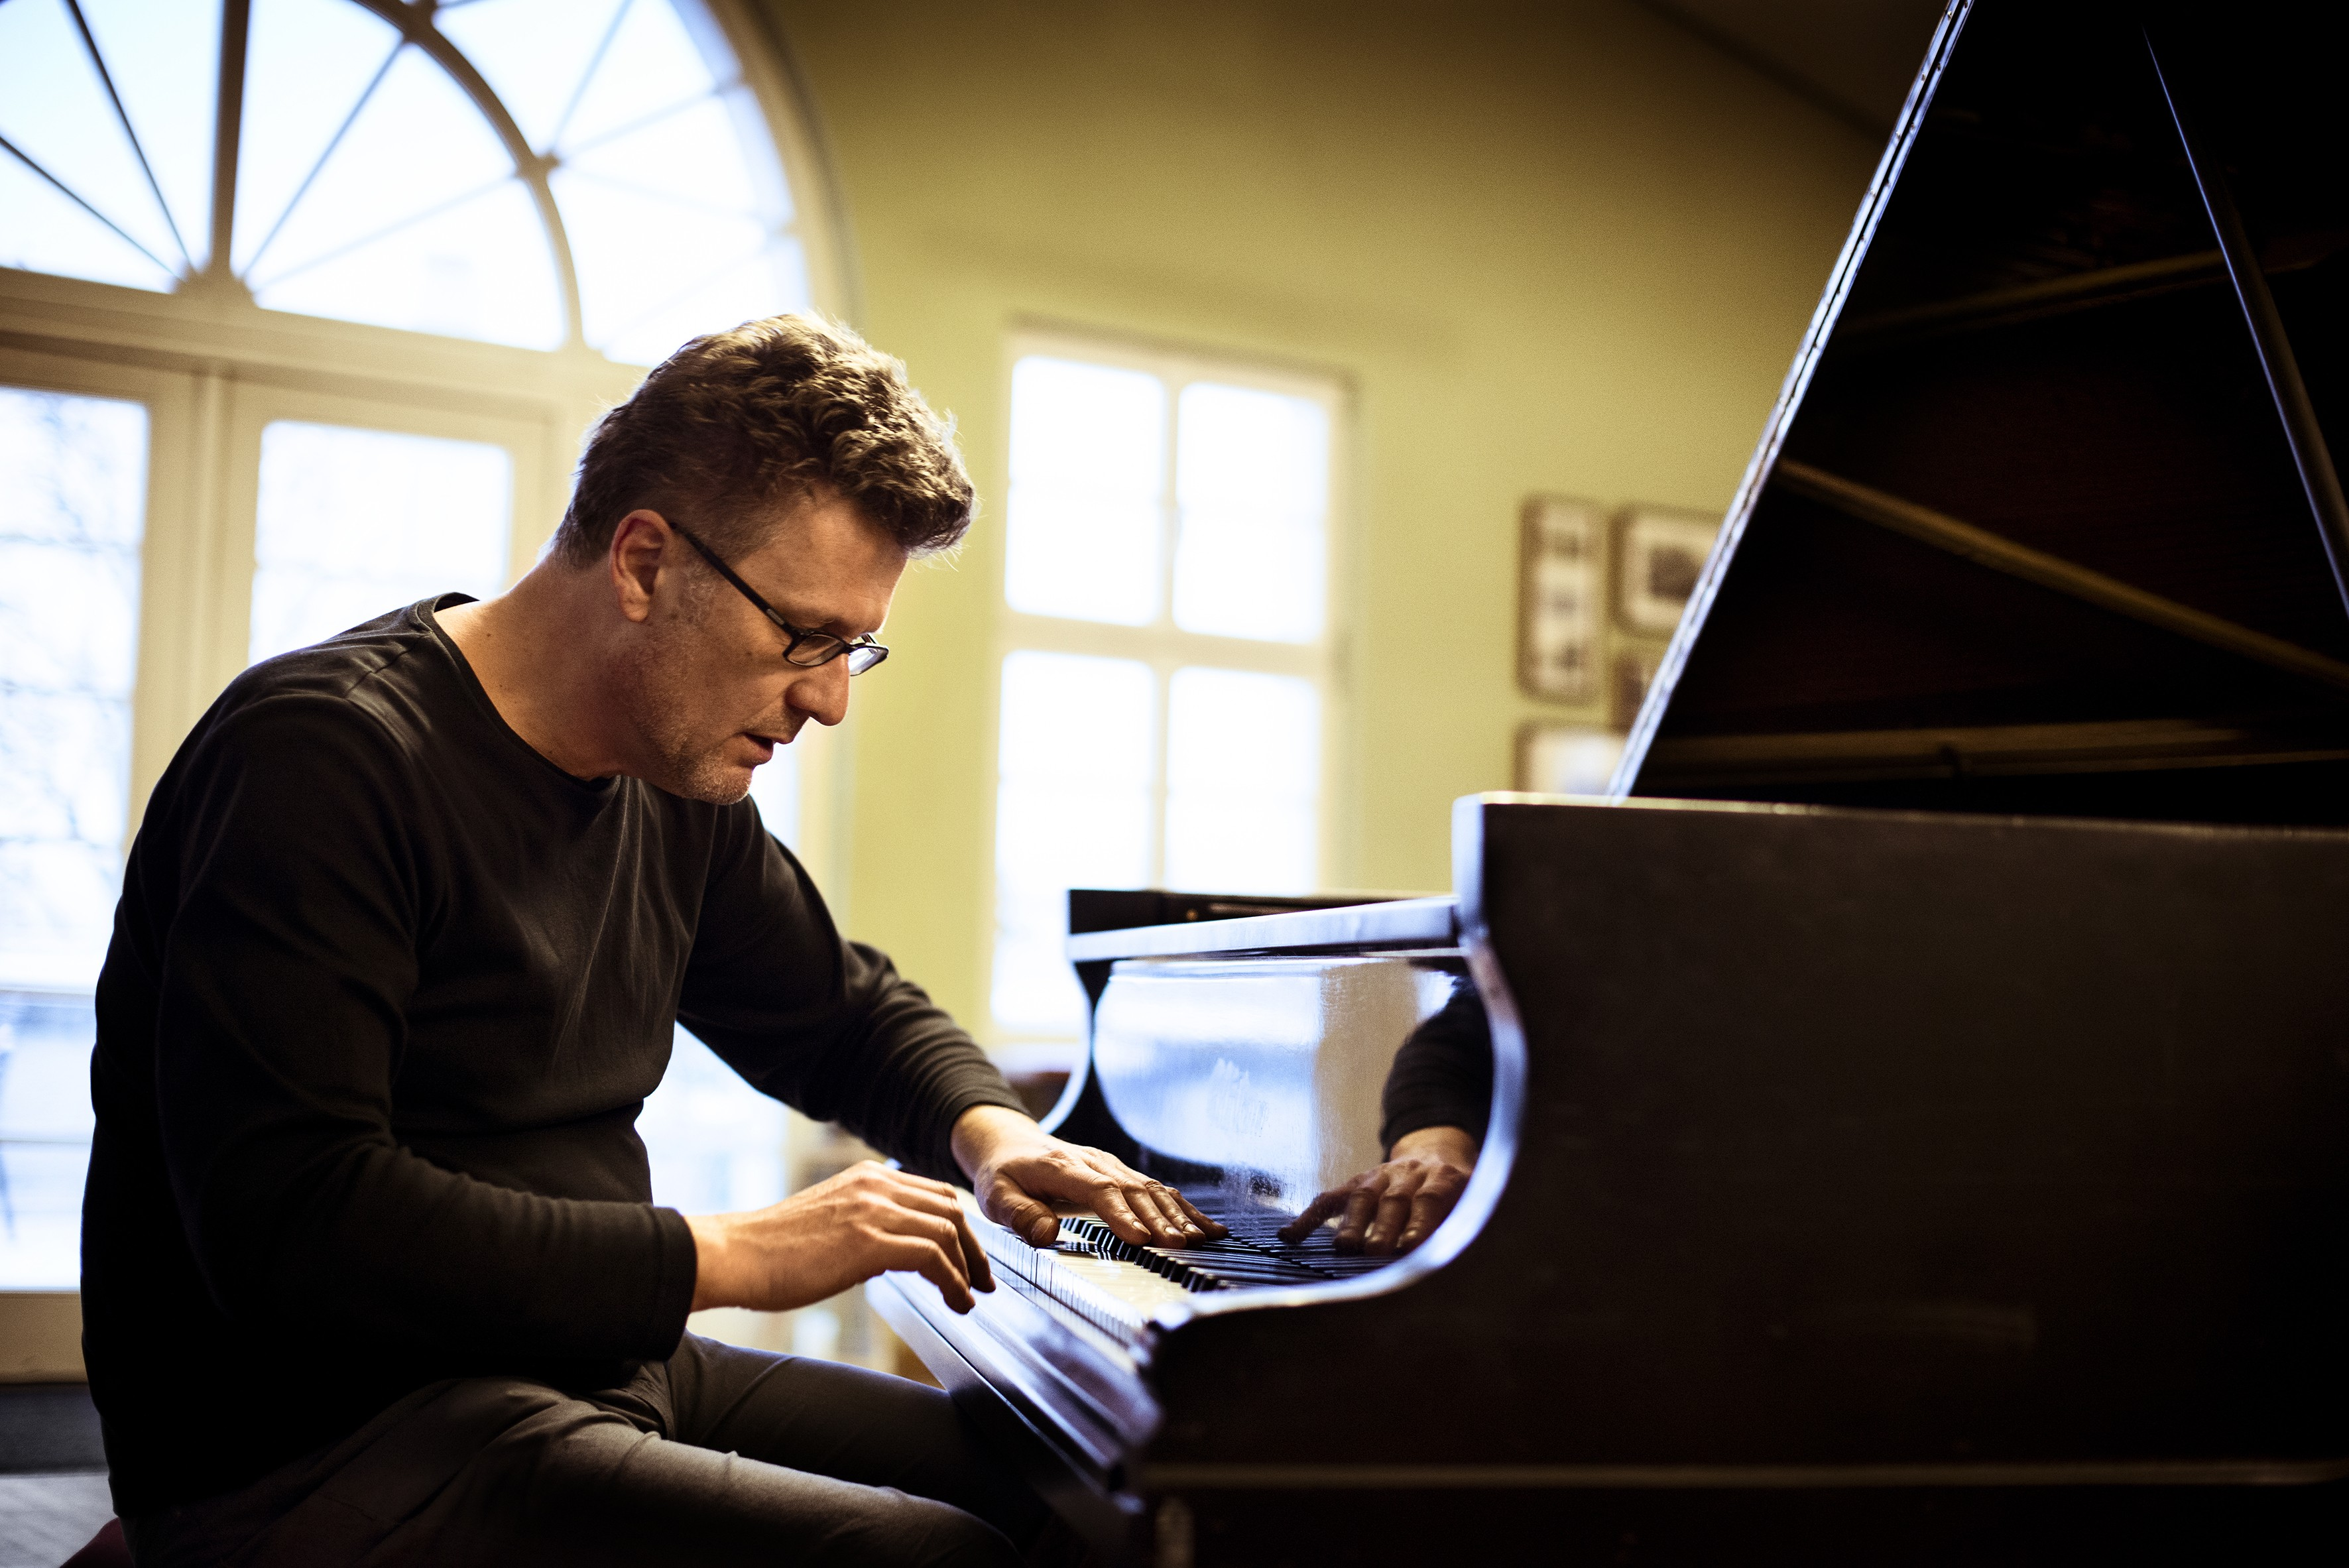 two solo albums make the best case for pianist uwe oberg  click to enlarge uwe oberg julia kneuse